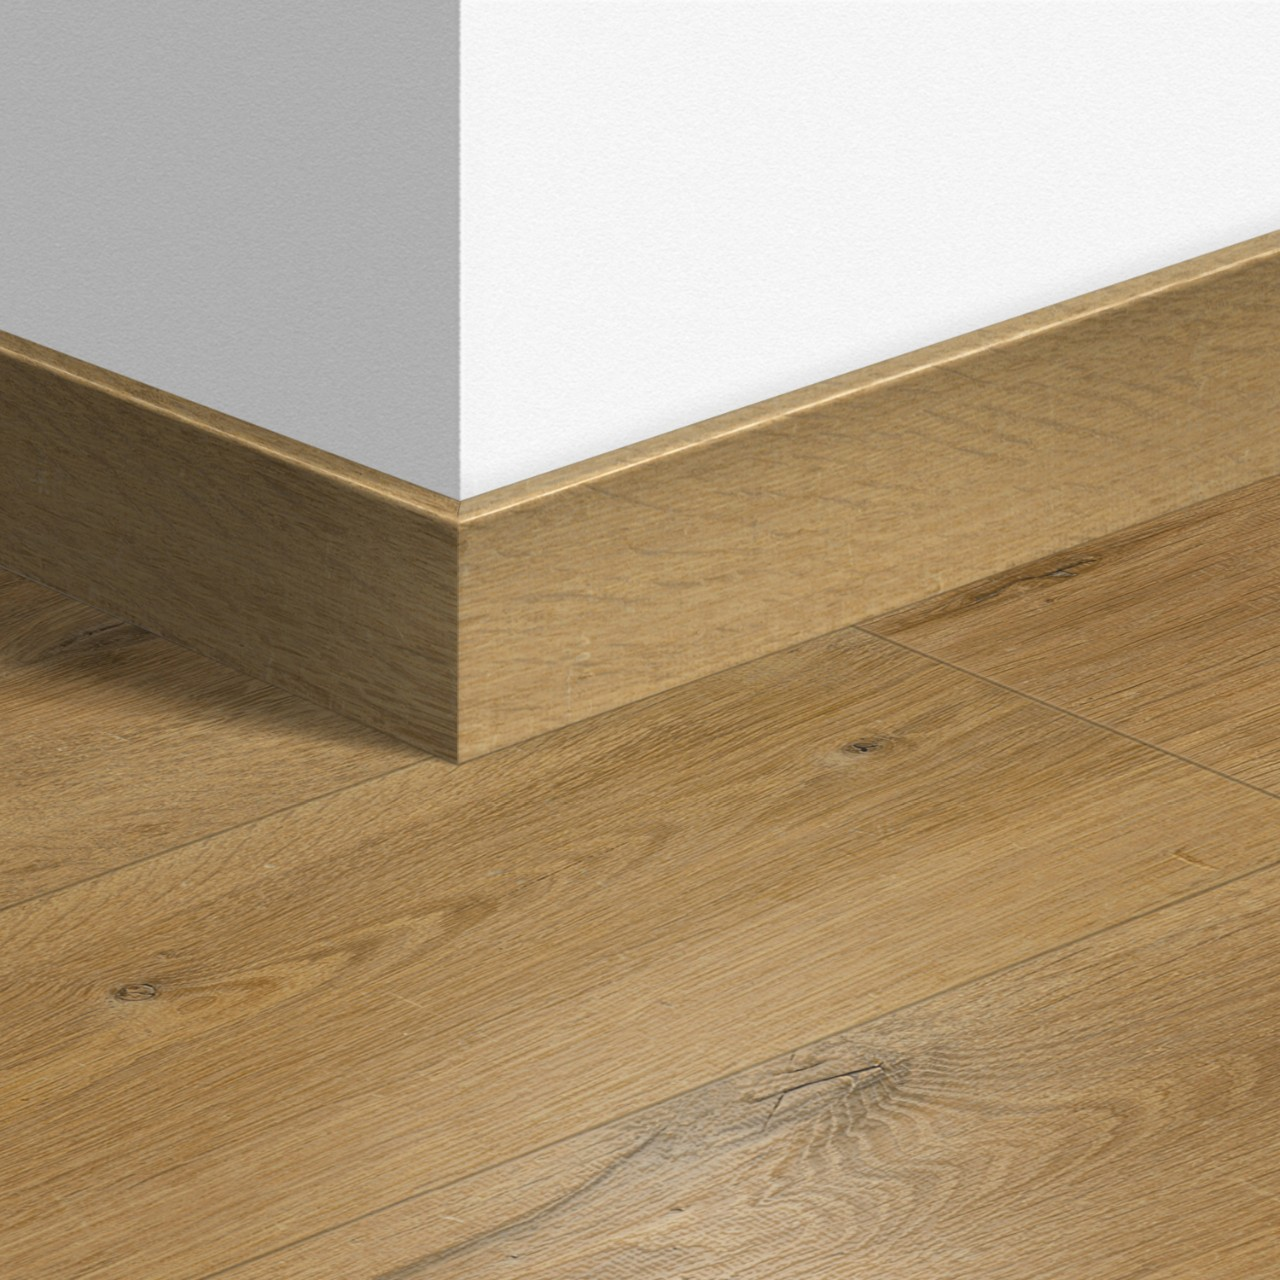 QSPSKR Laminate Accessories Soft oak natural QSPSKR01855